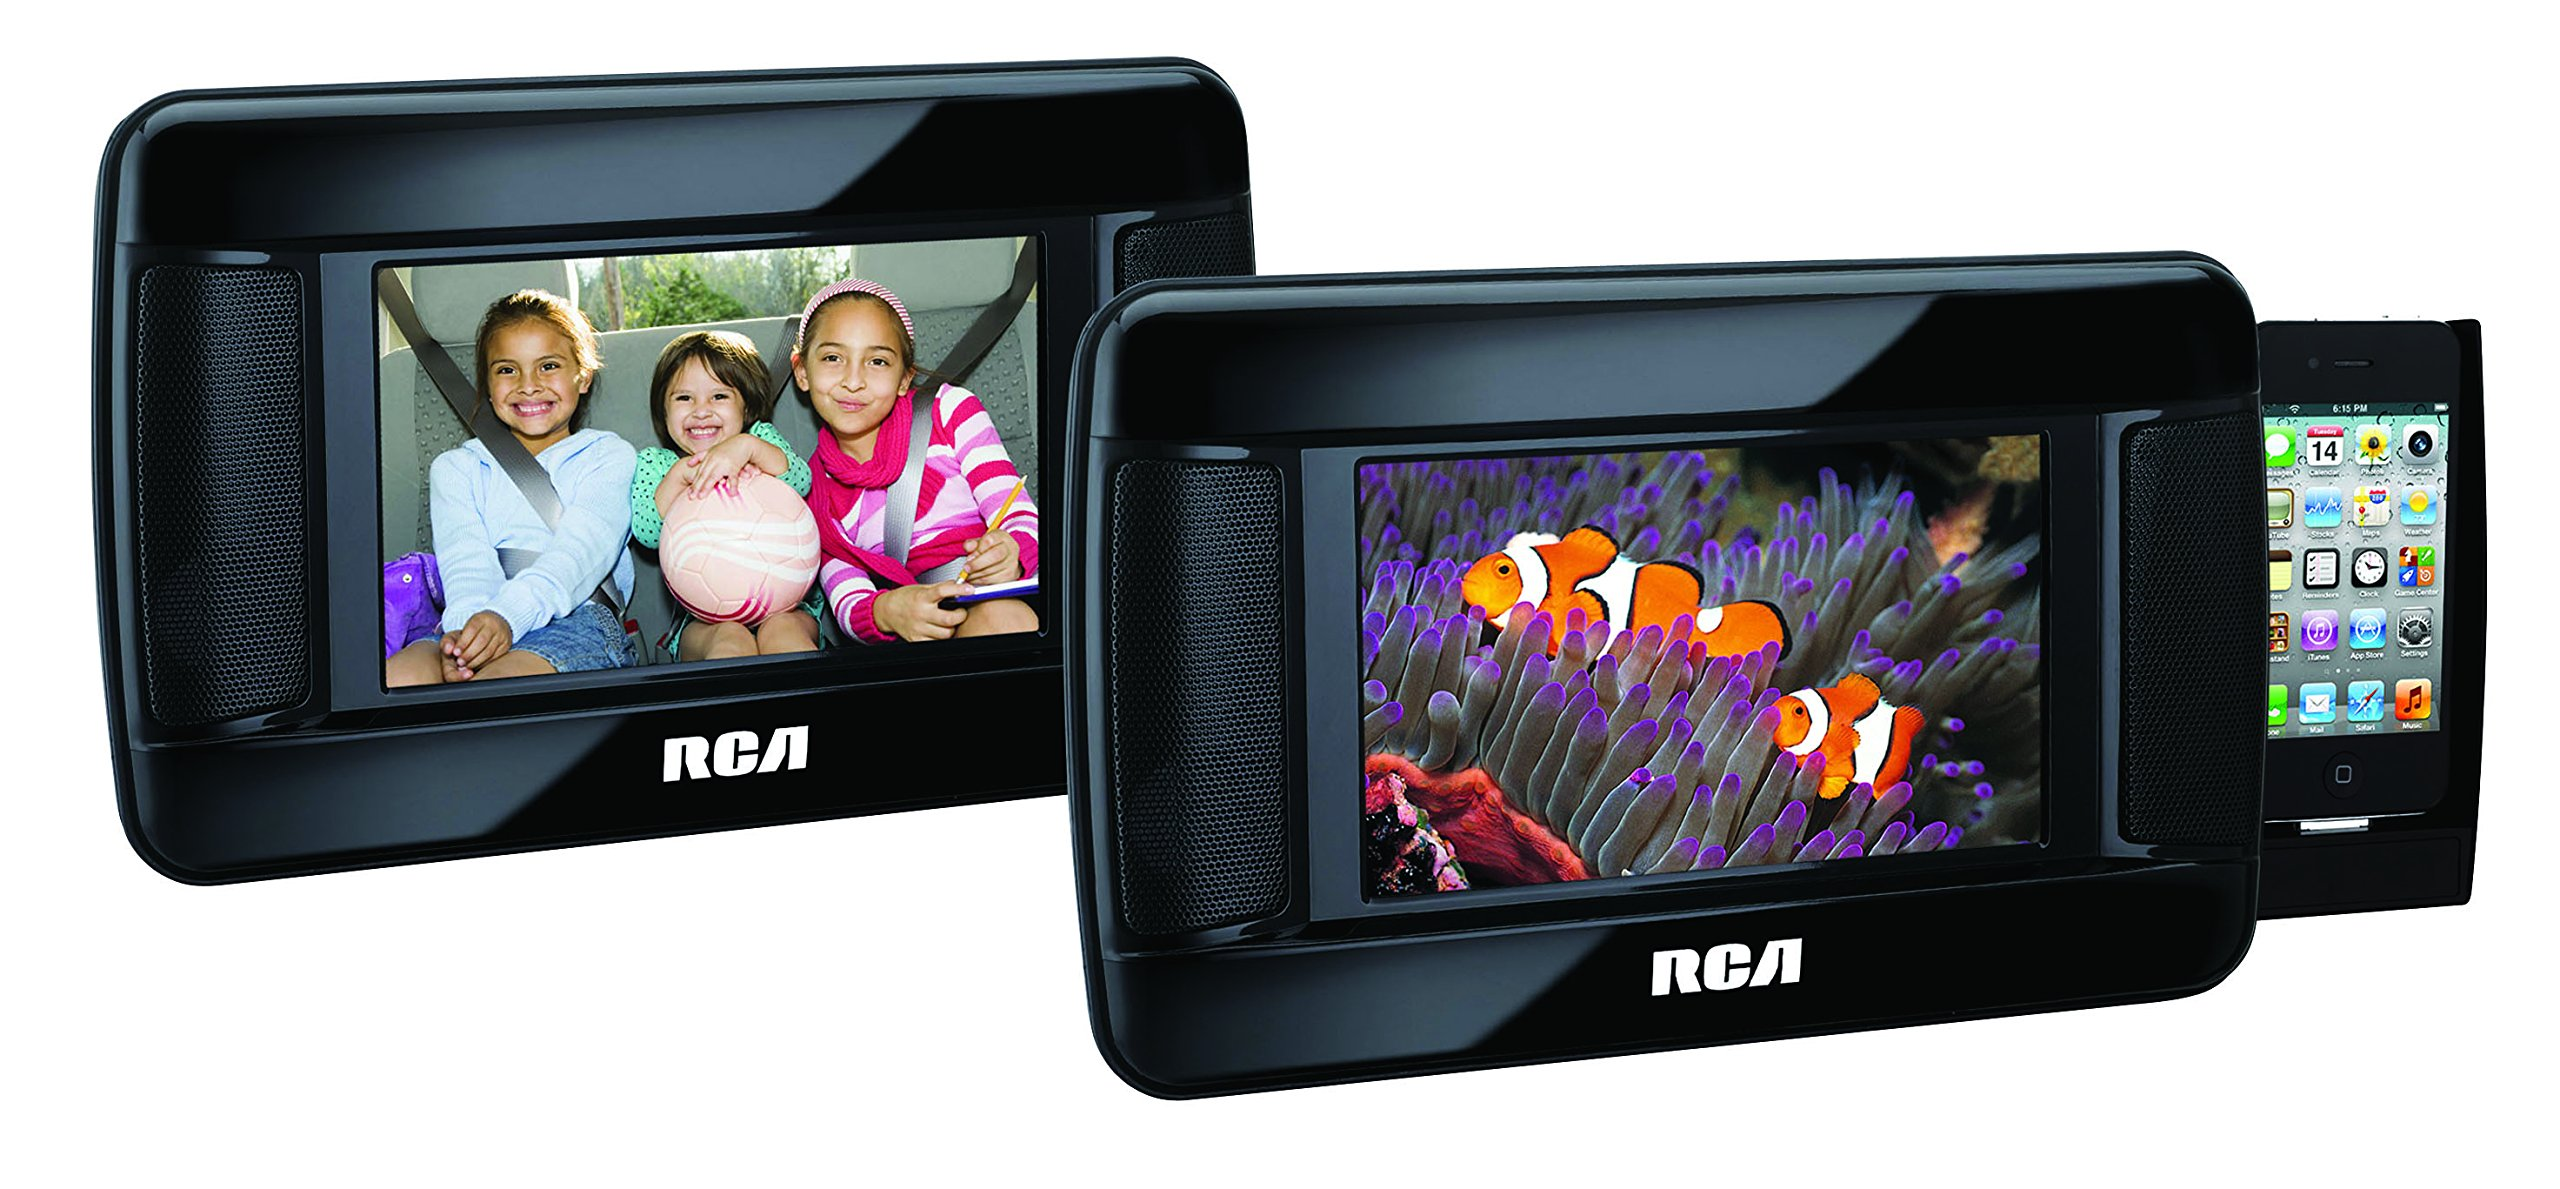 RCA DRC97873i 7-Inch Mobile DVD Player with iPhone Dock by RCA